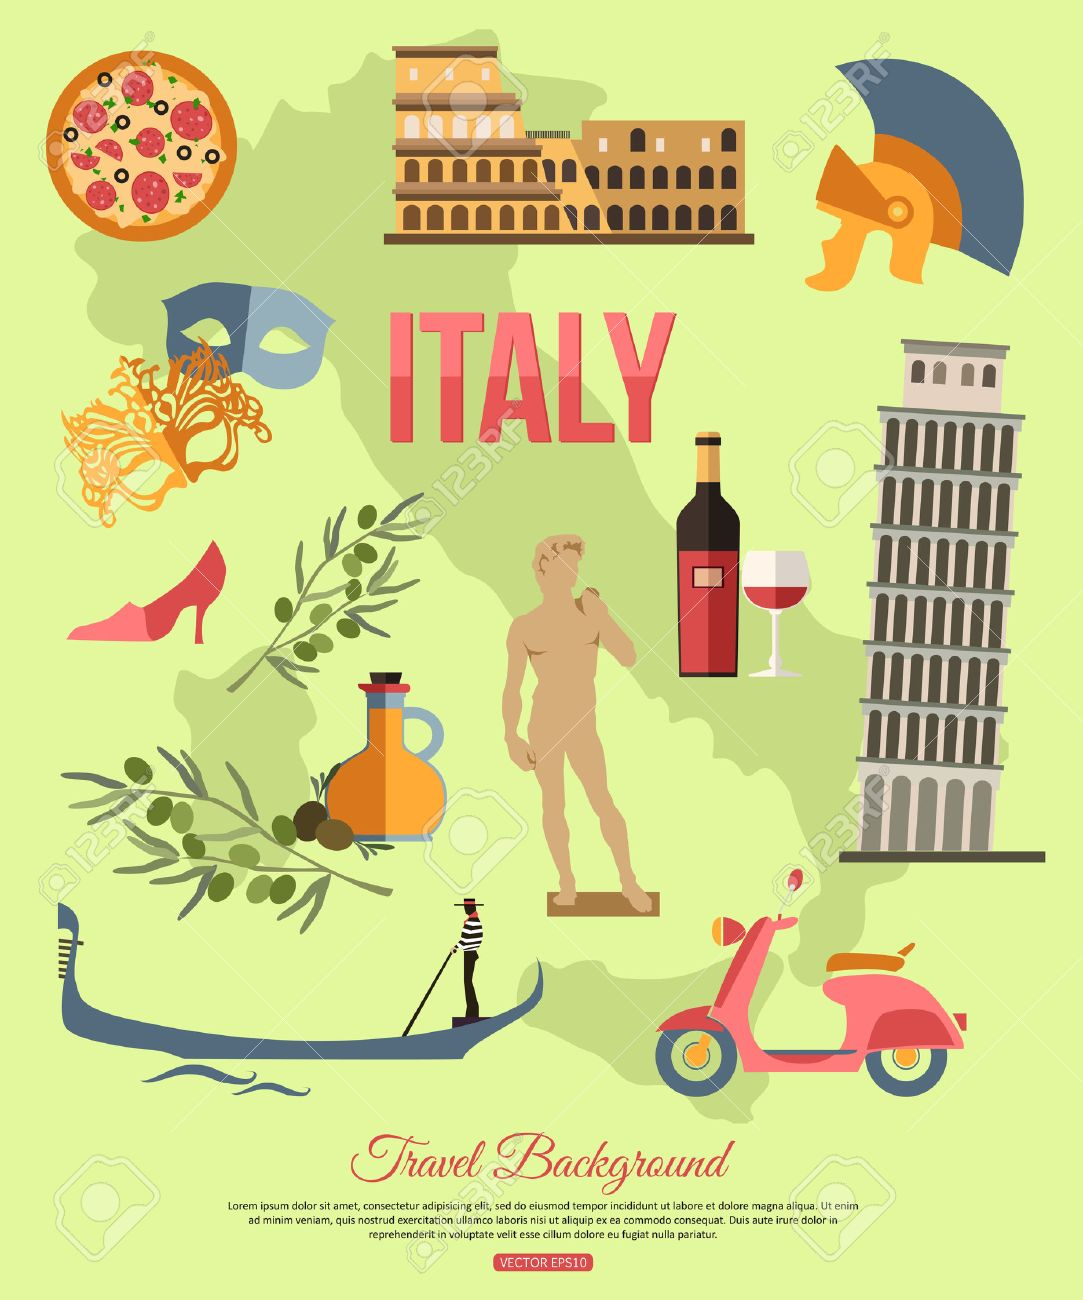 Italy travel background with place for text set of colorful flat italy travel background with place for text set of colorful flat icons italy symbols biocorpaavc Images